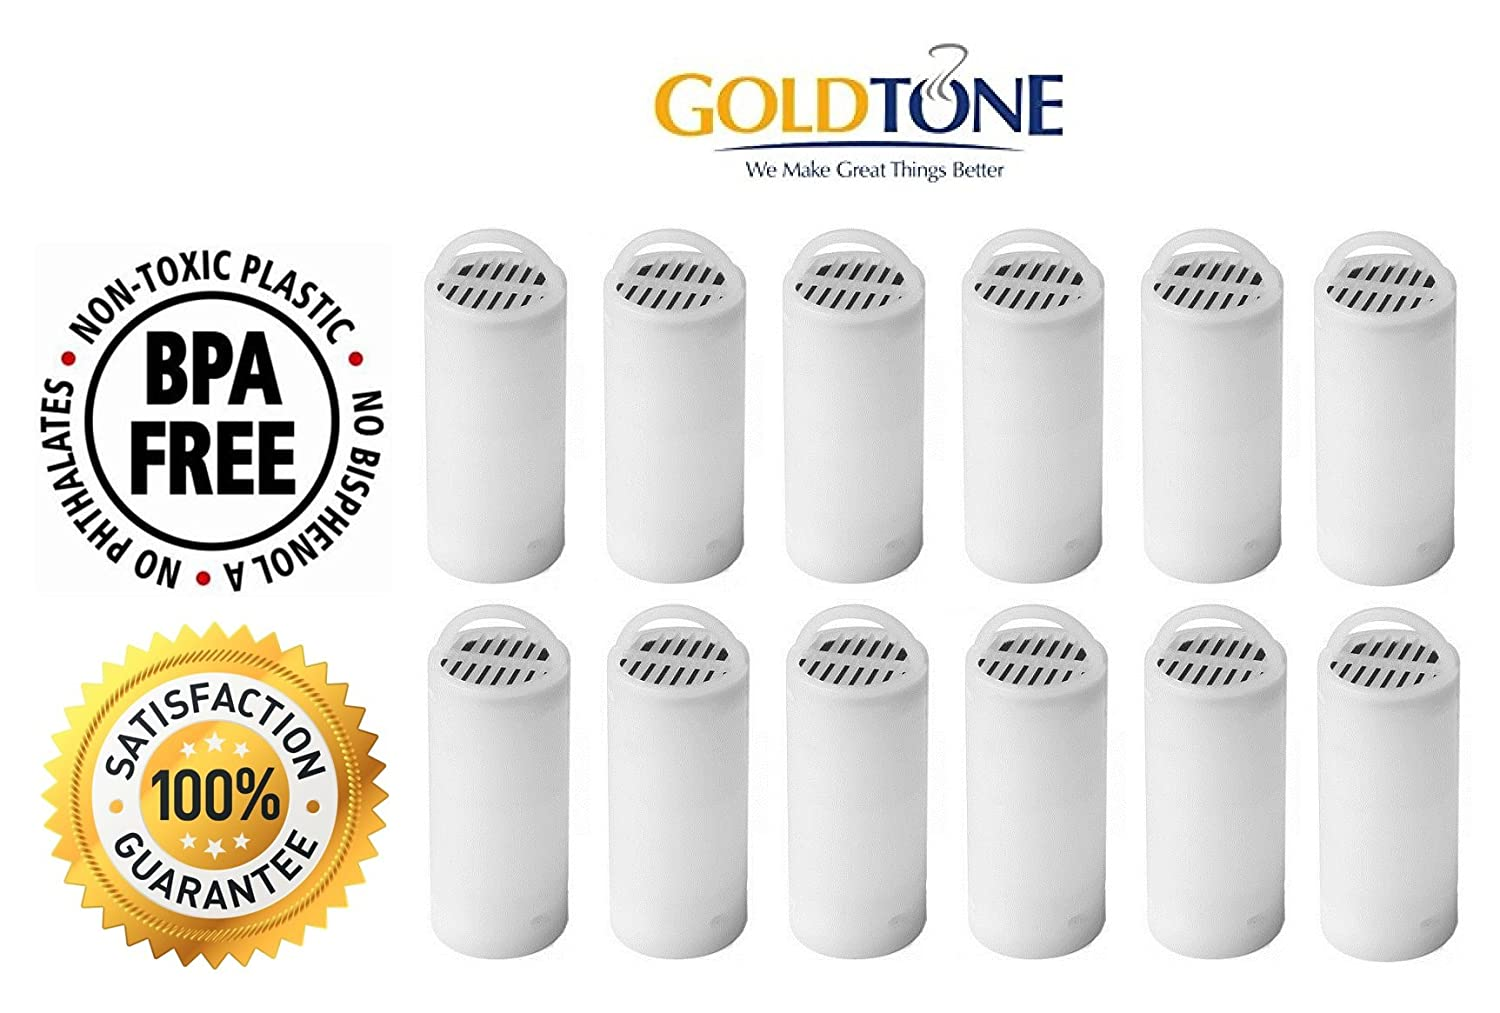 GoldTone Brand Pet Fountain Charcoal Water Filter fits Drinkwell 360 Drinkwell 360 Stainless Multi Pet Fountains. Replaces your Drinkwell 360 Pet Fountain Water Filter